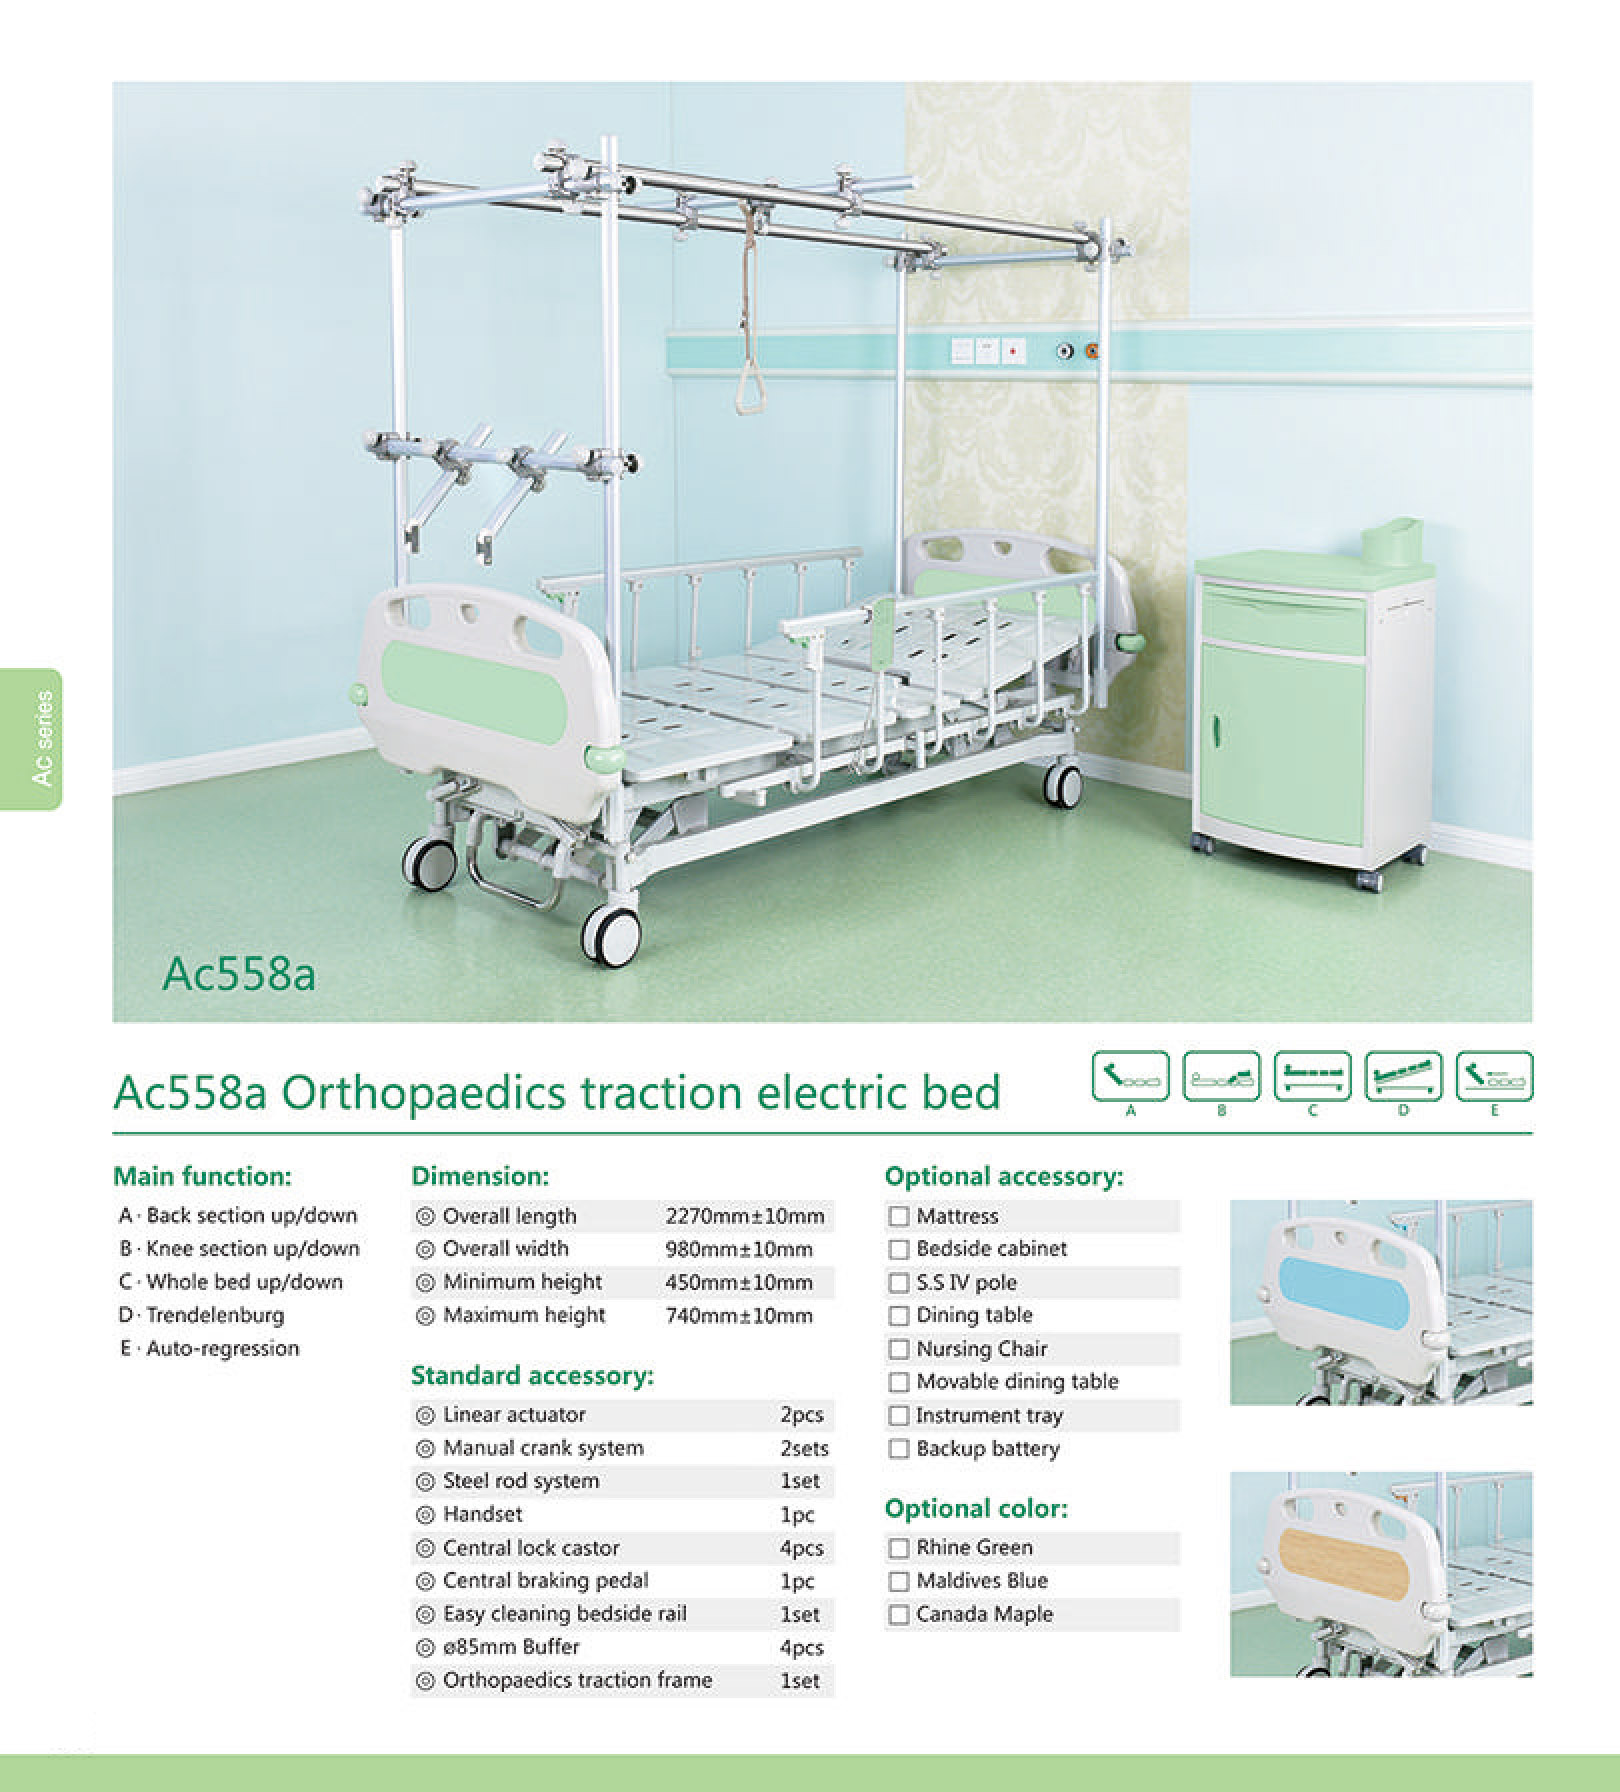 Ac558a Orthopaedics traction electric bed